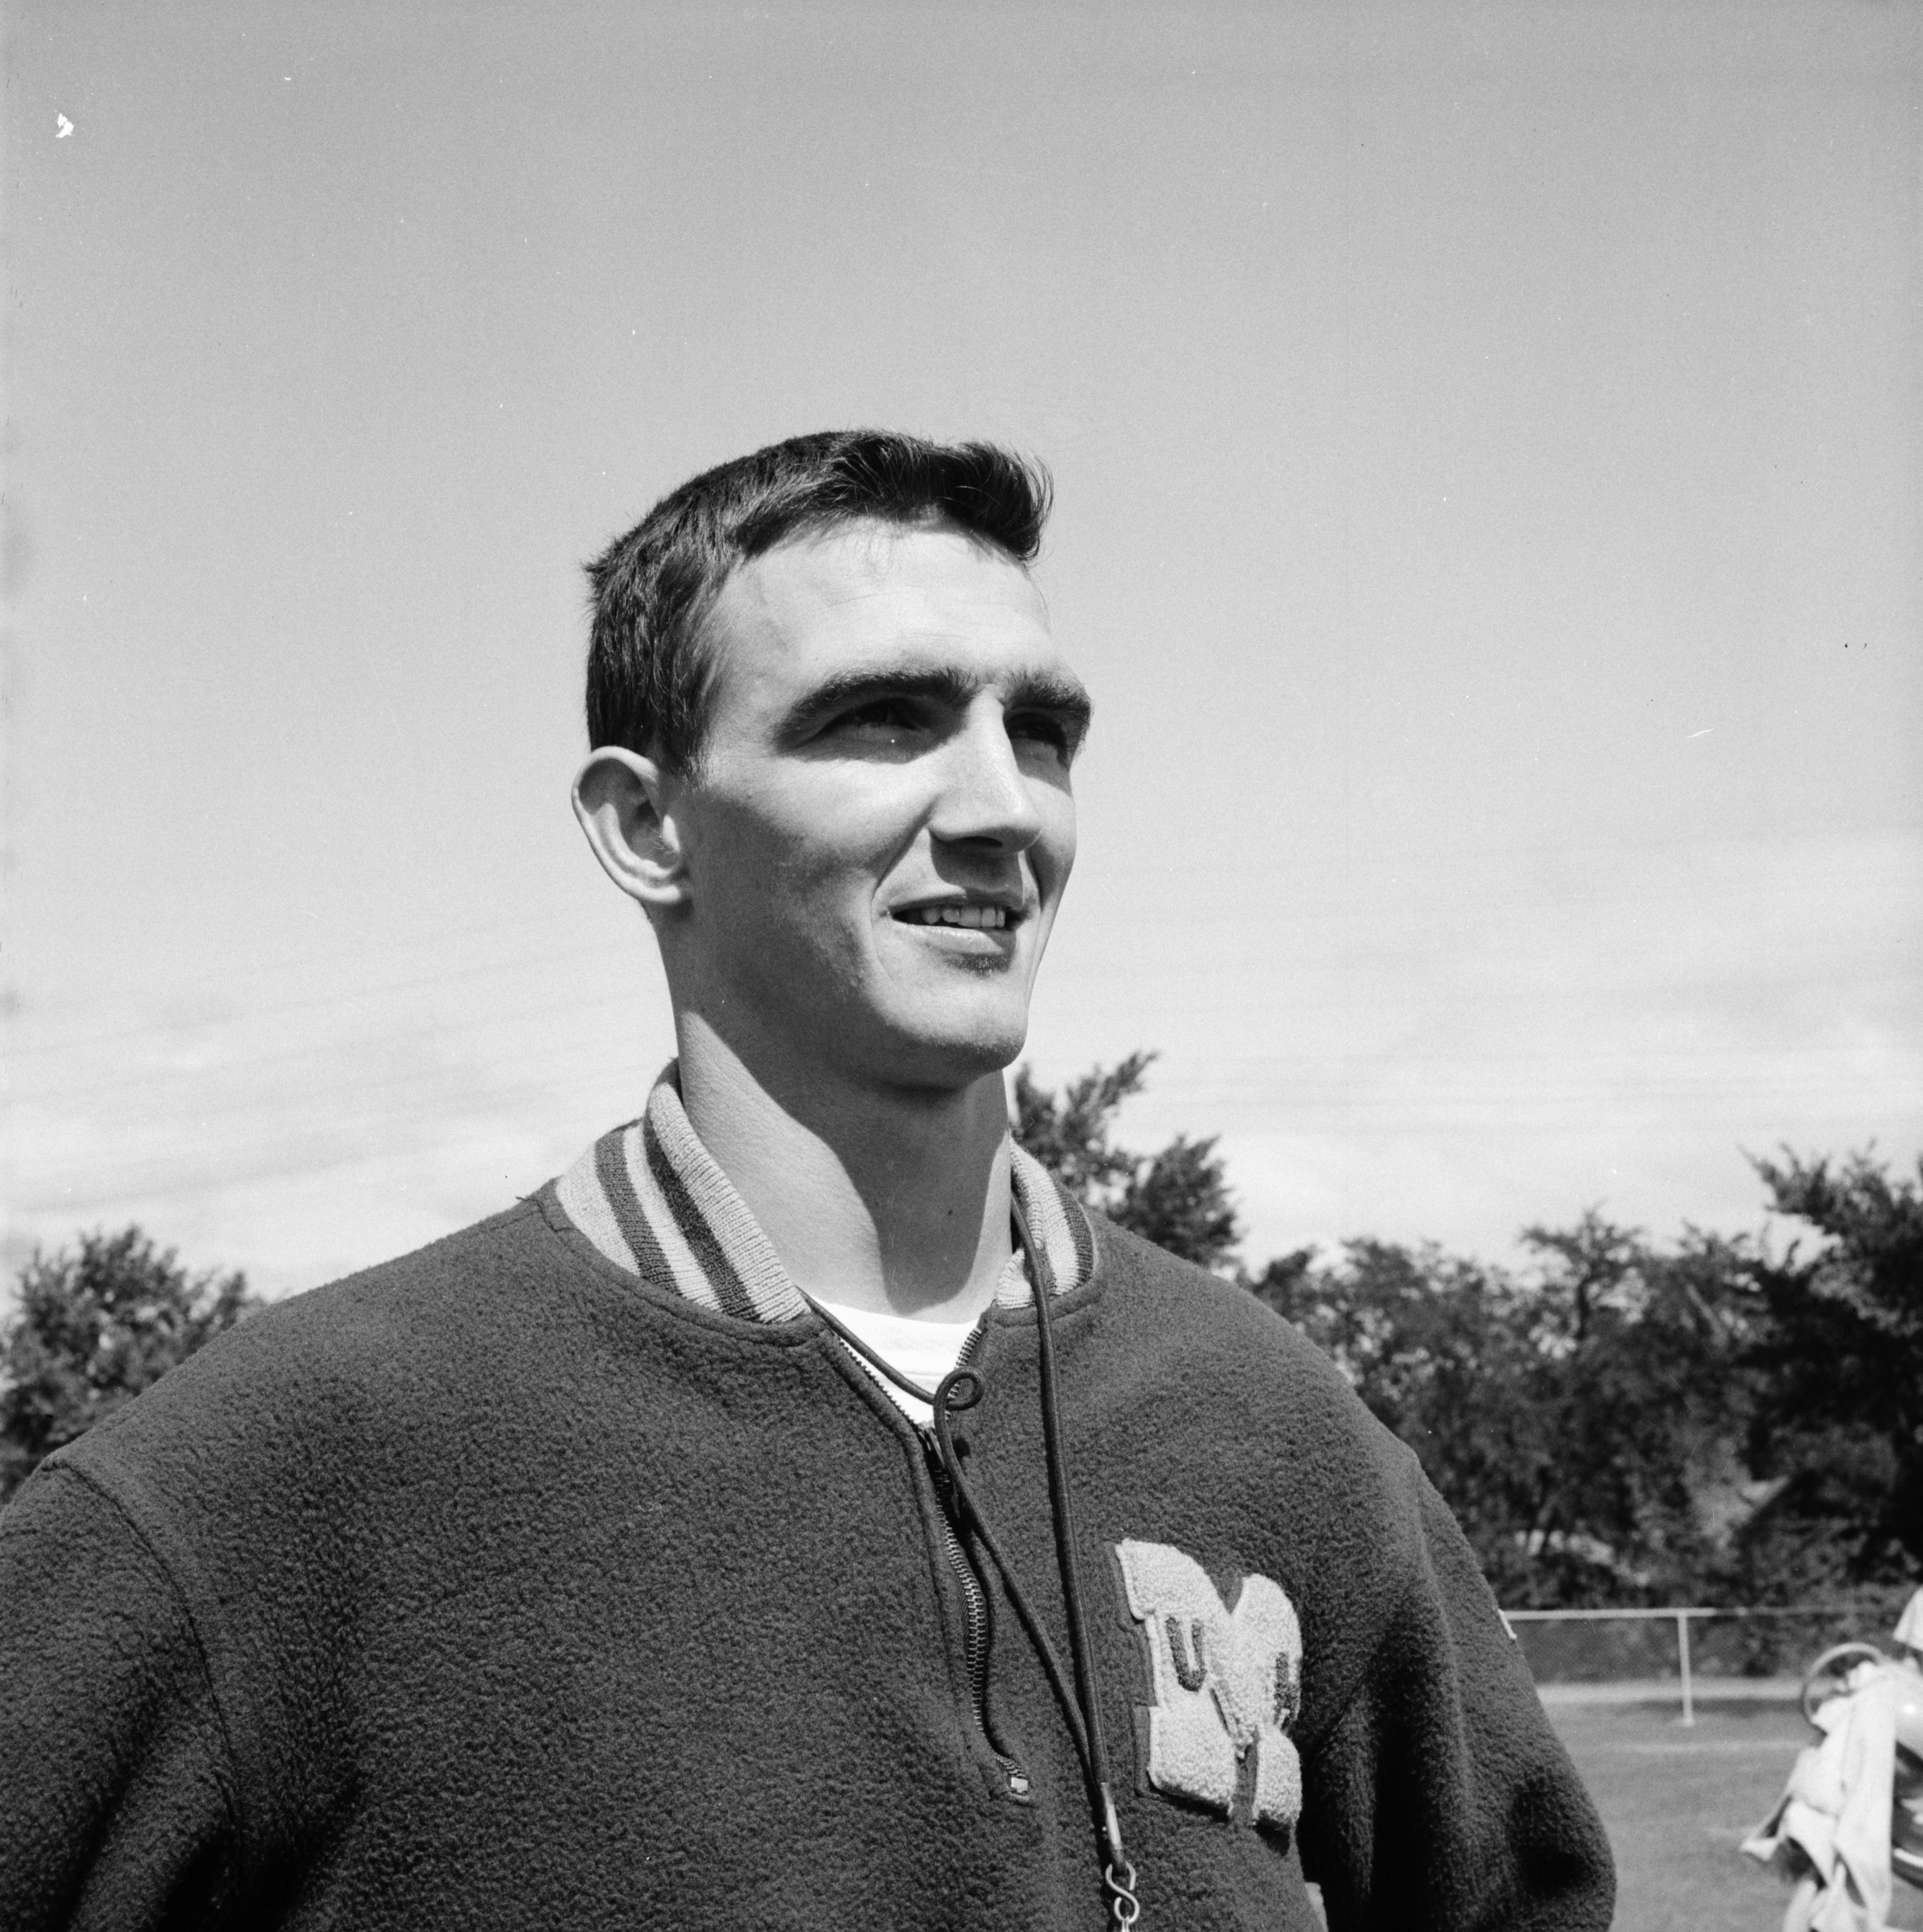 Jay Stielstra, University High School football coach, September 1958 image